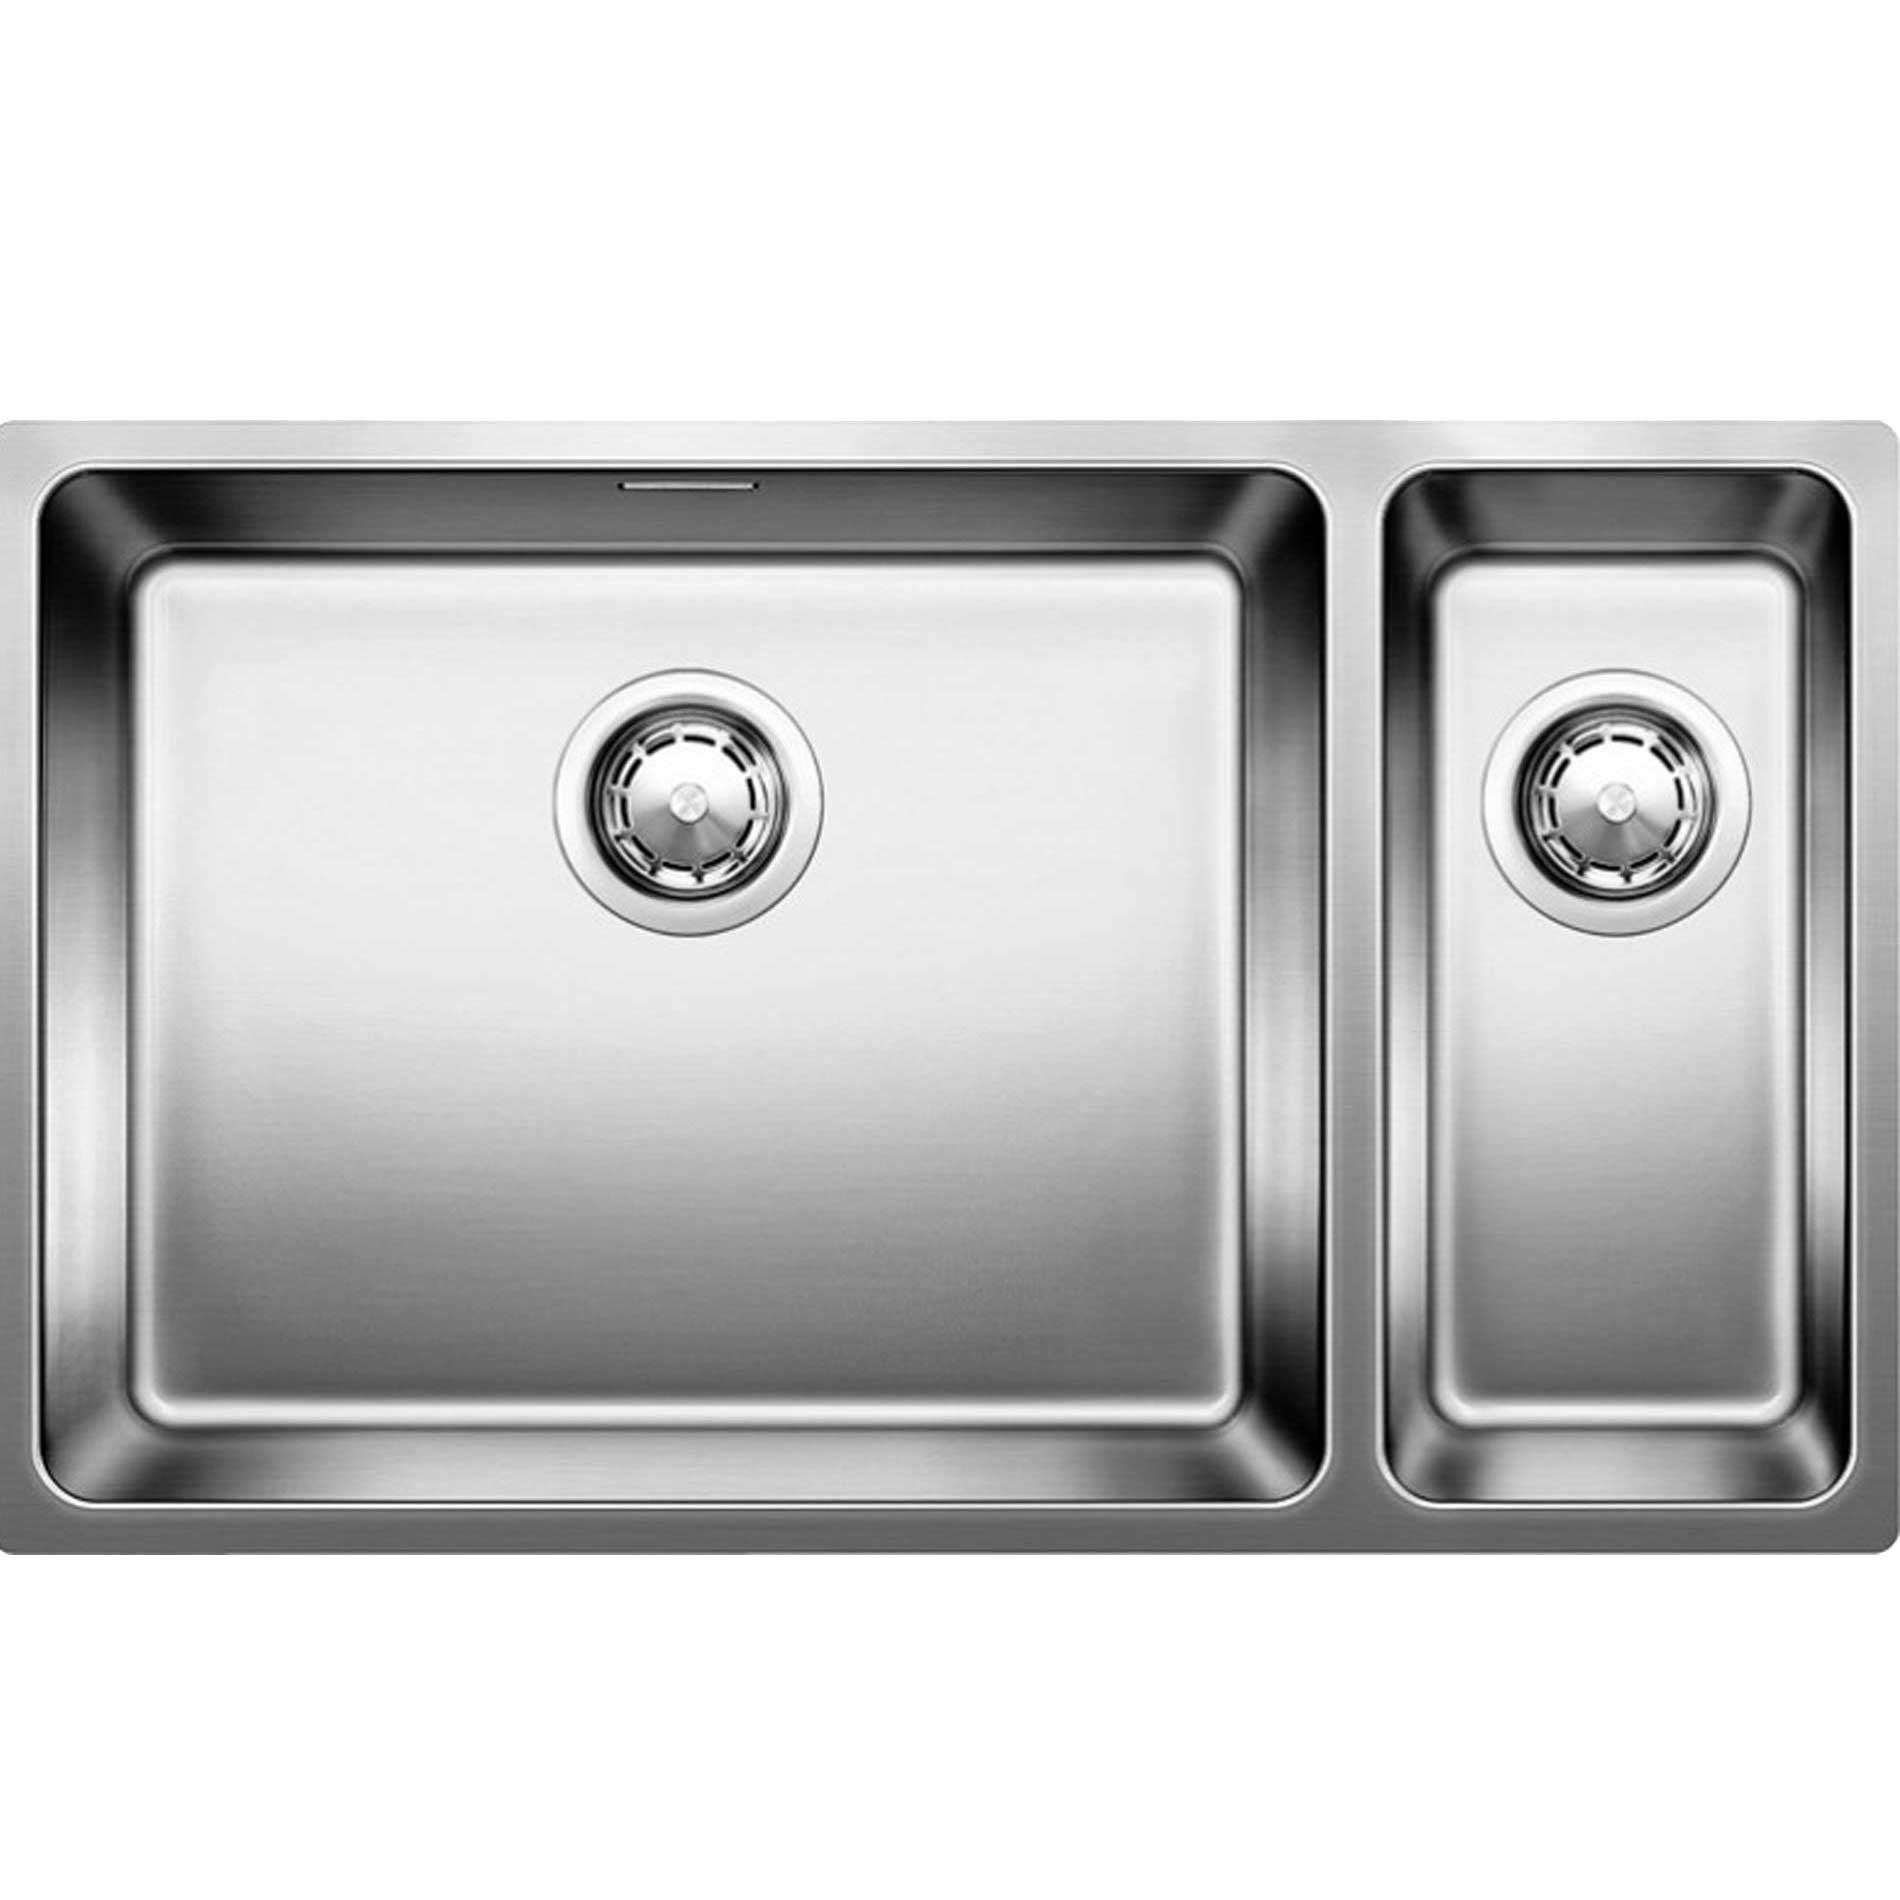 Blanco: Andano 500/180-U Stainless Steel Sink - Kitchen Sinks & Taps